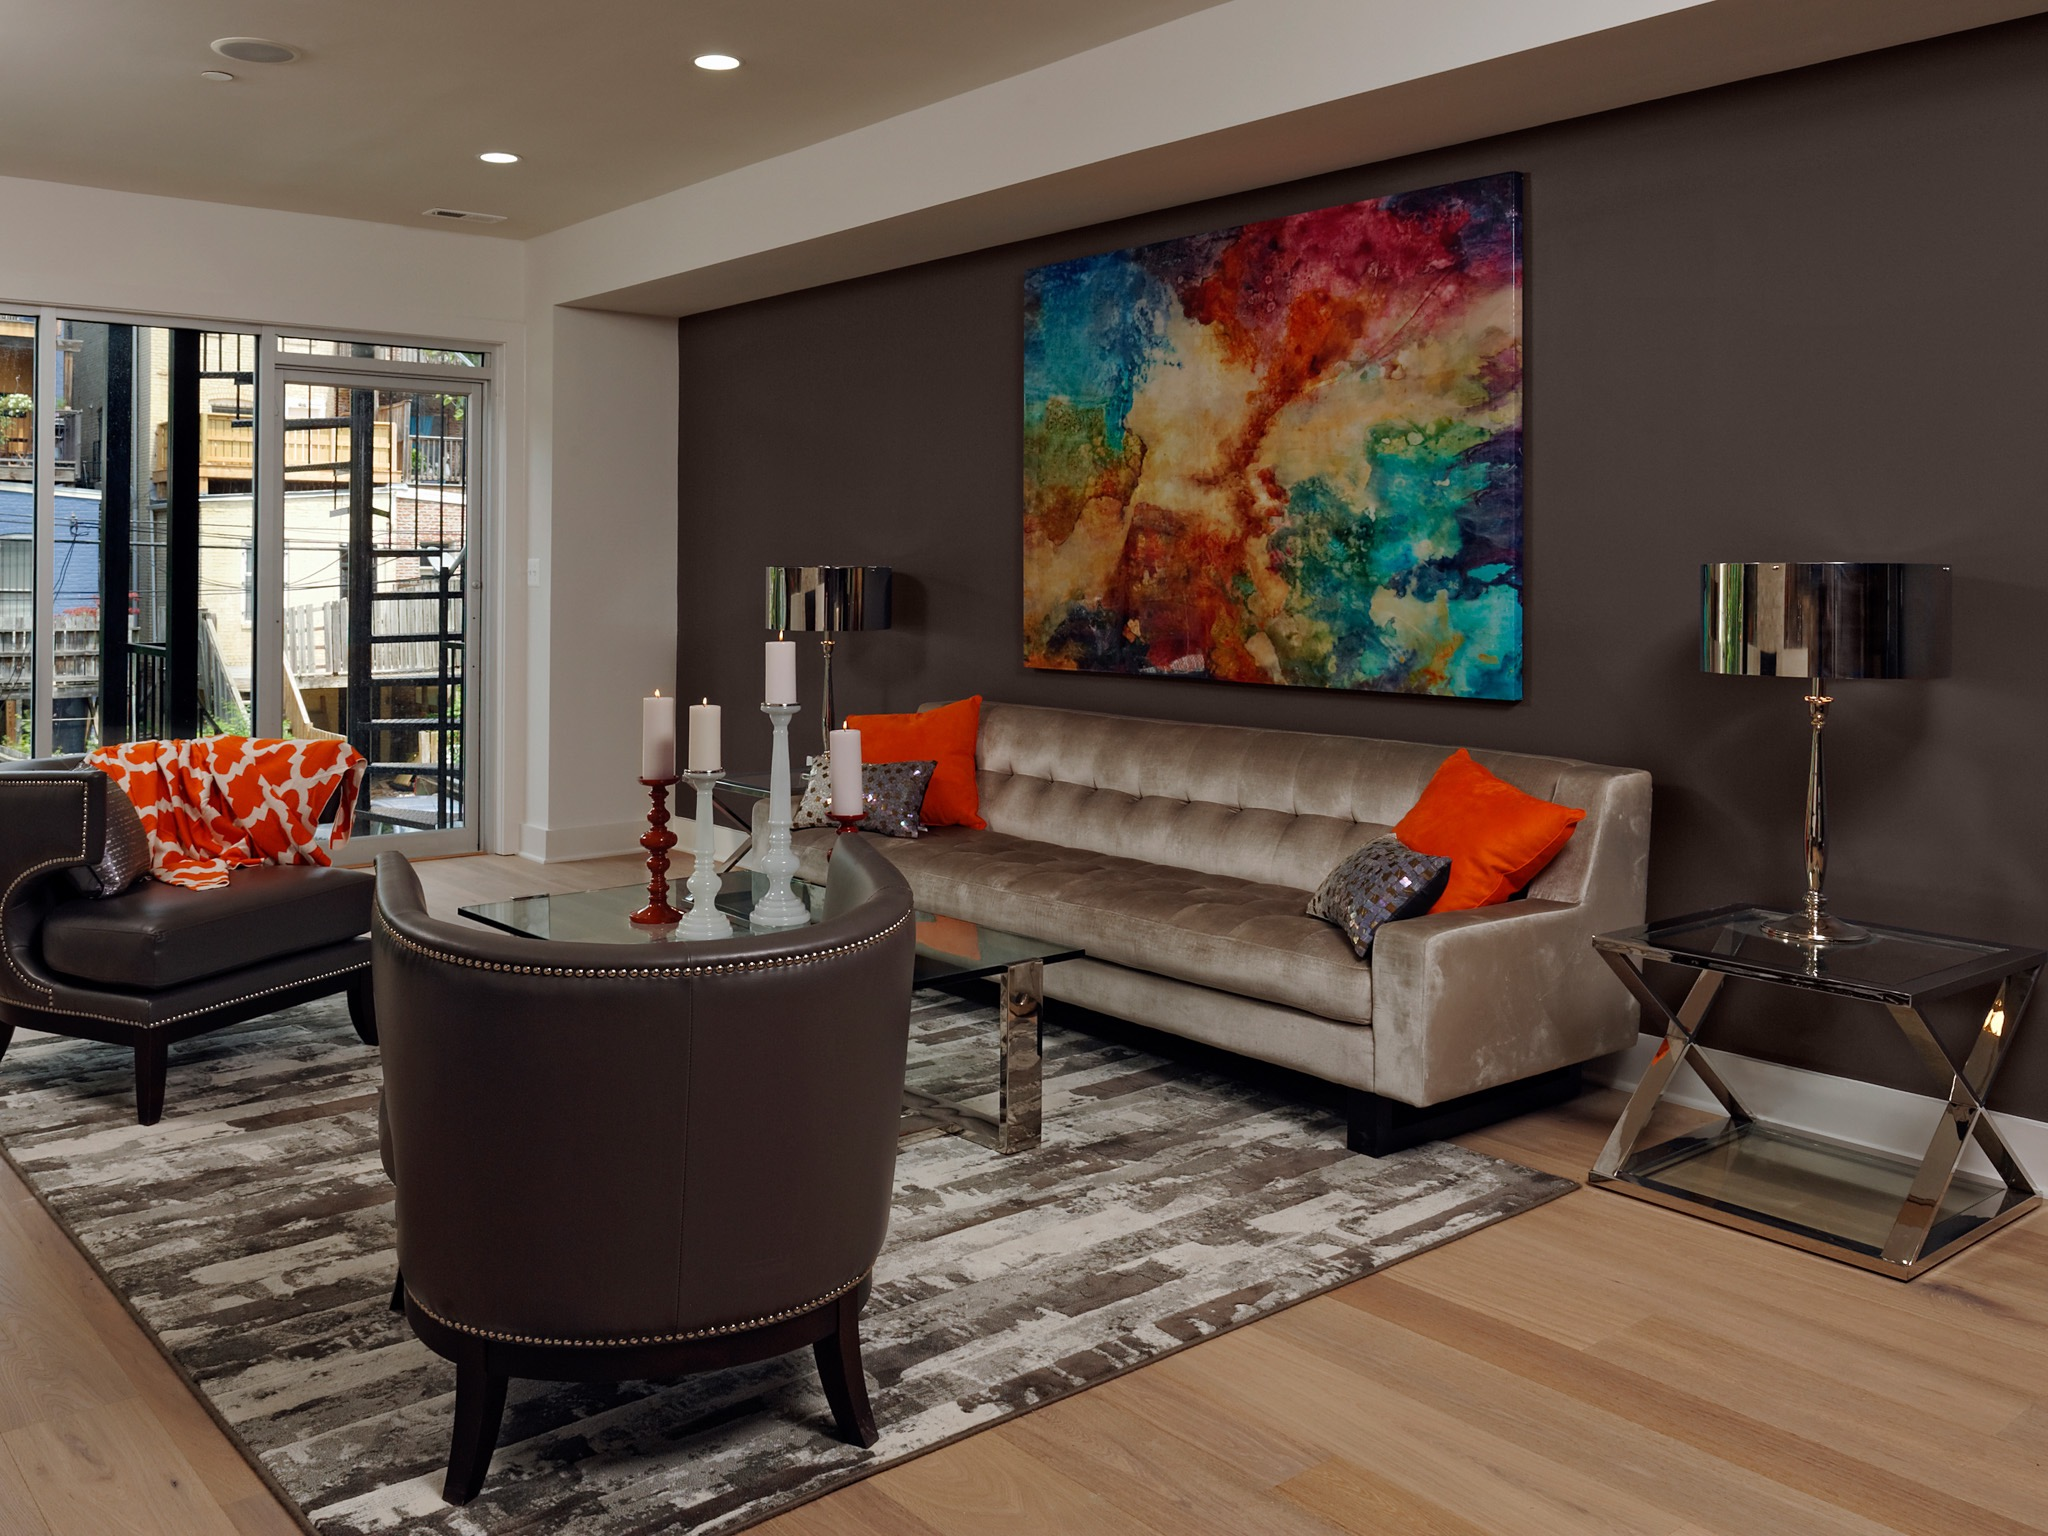 Contemporary Living Room With Abstract Art And Brown Wall (Image 4 of 30)